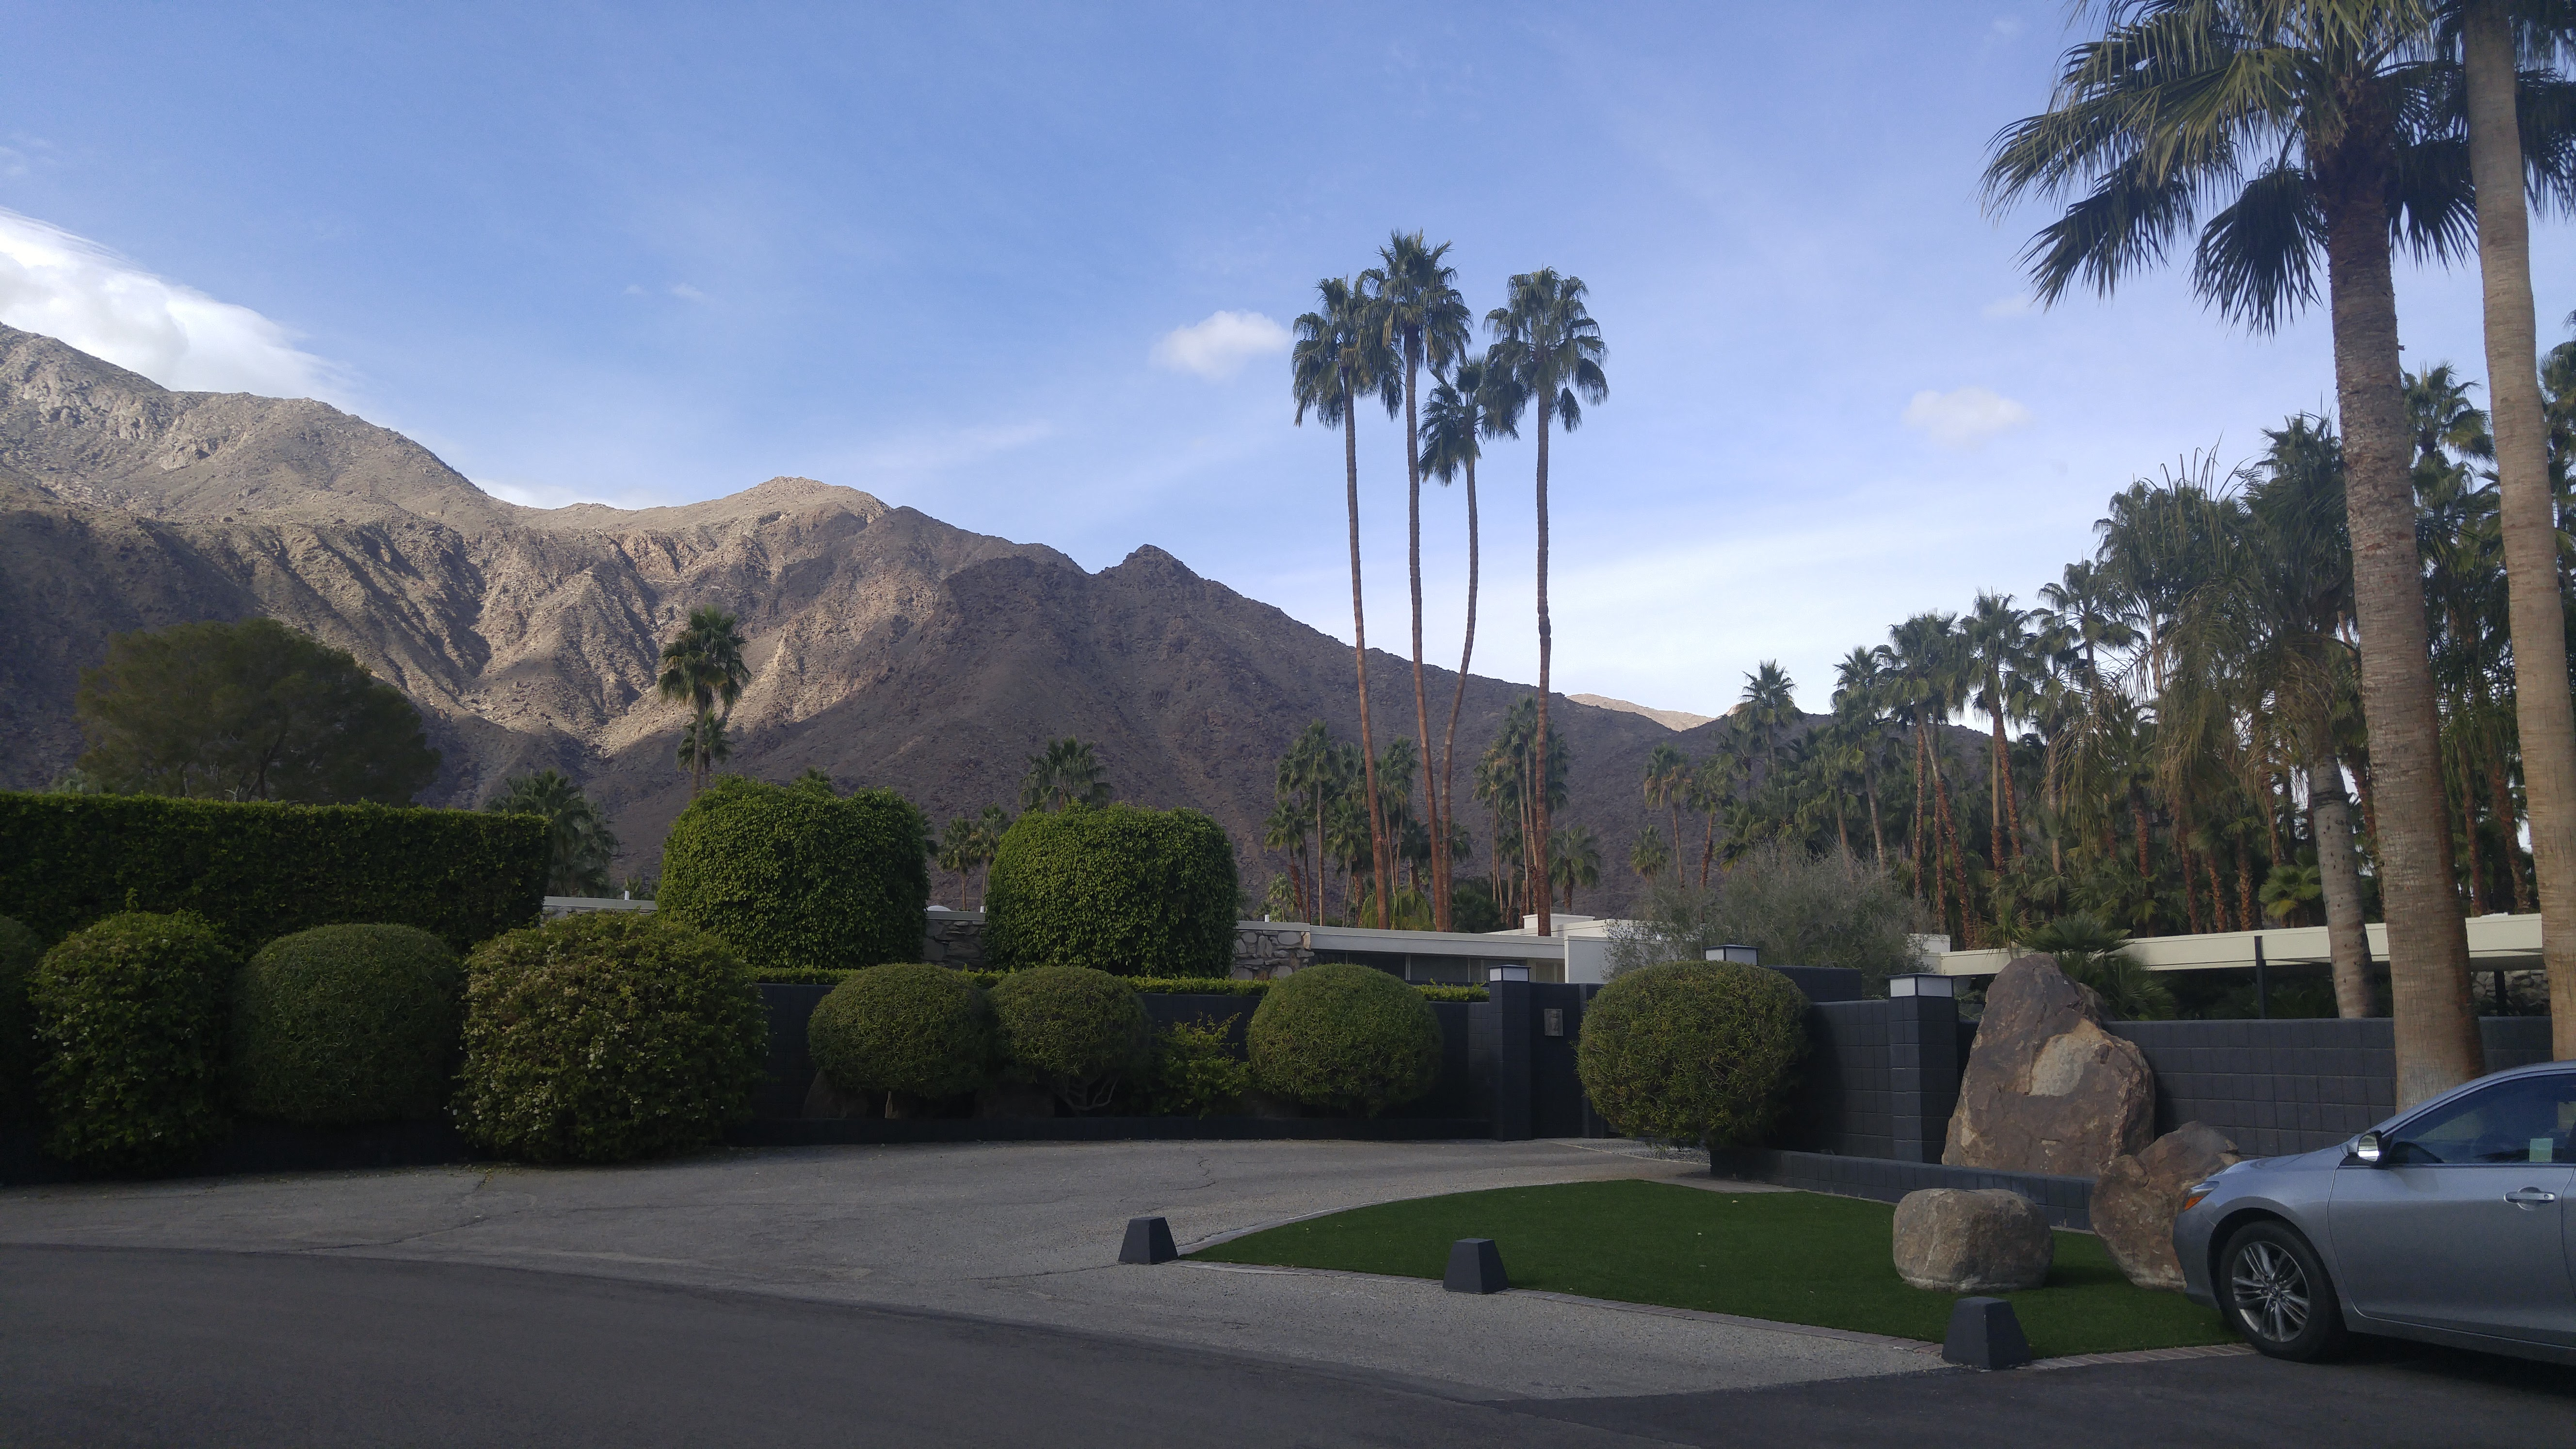 Walking Tour in Palm Springs - The Danish Tour Guide